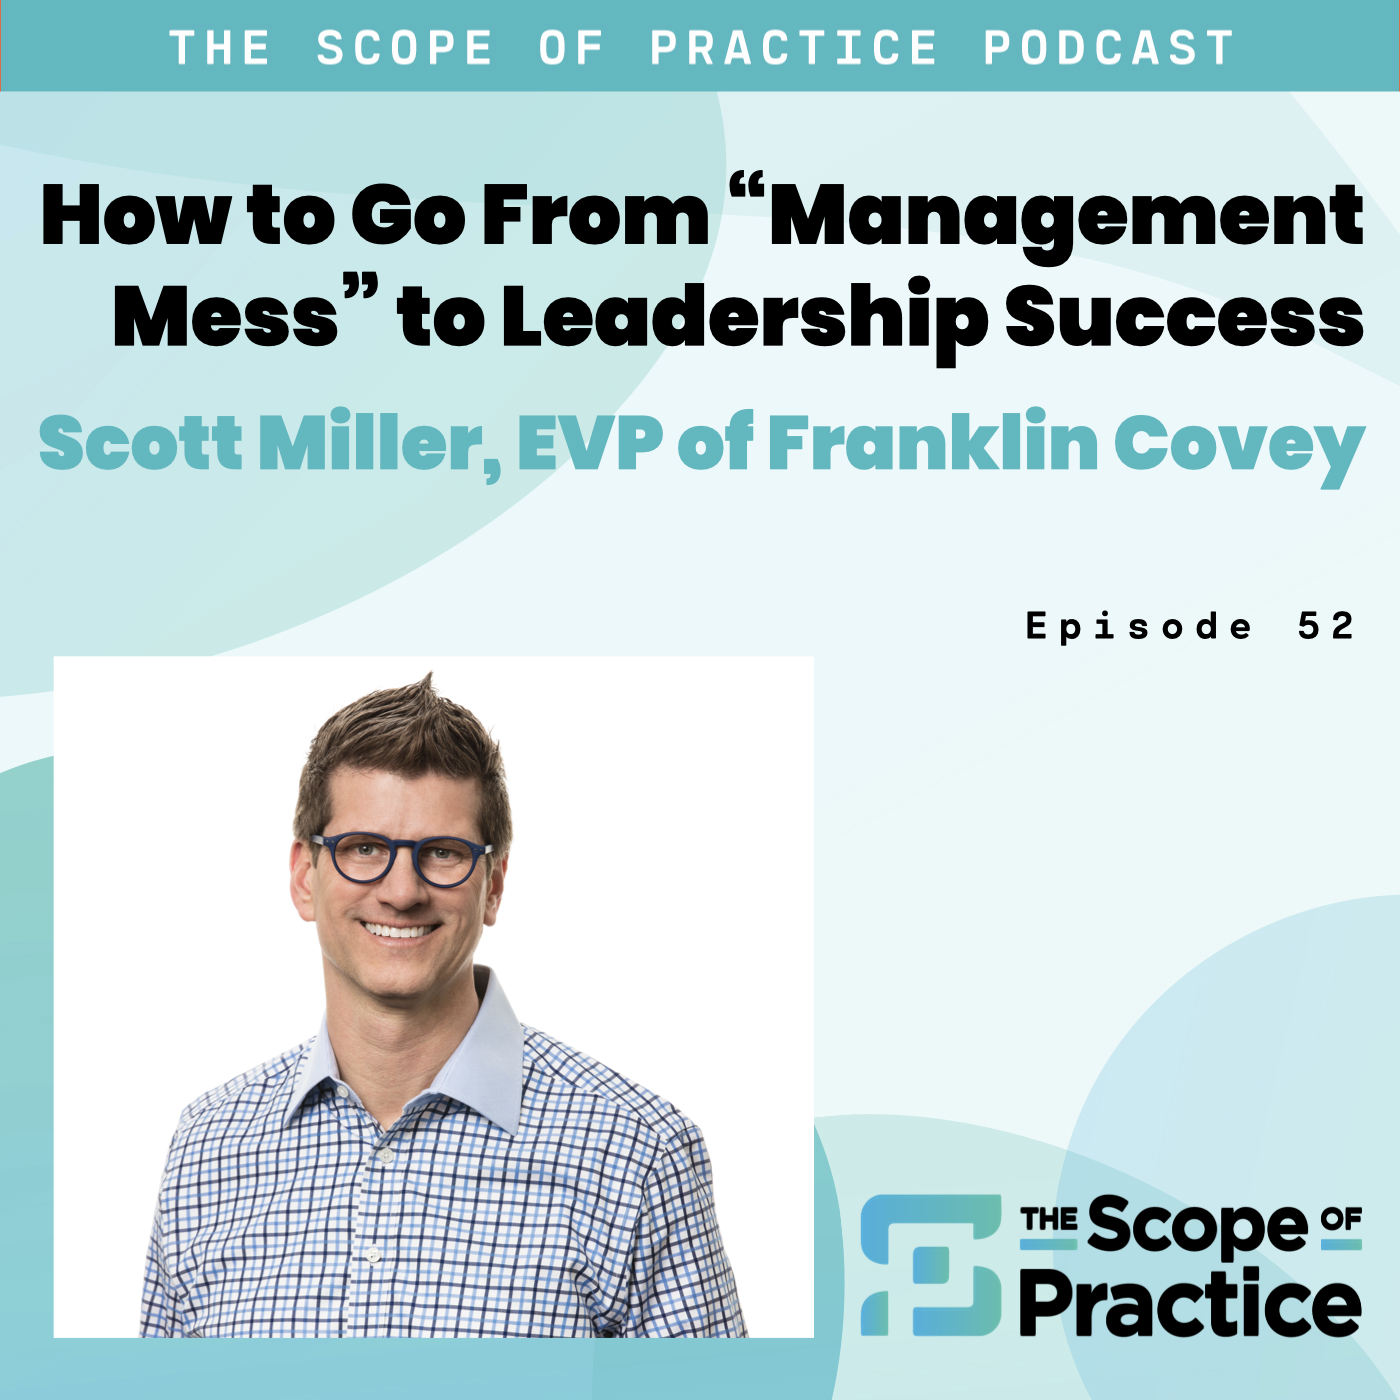 Management Mess to Leadership Success with Scott Miller